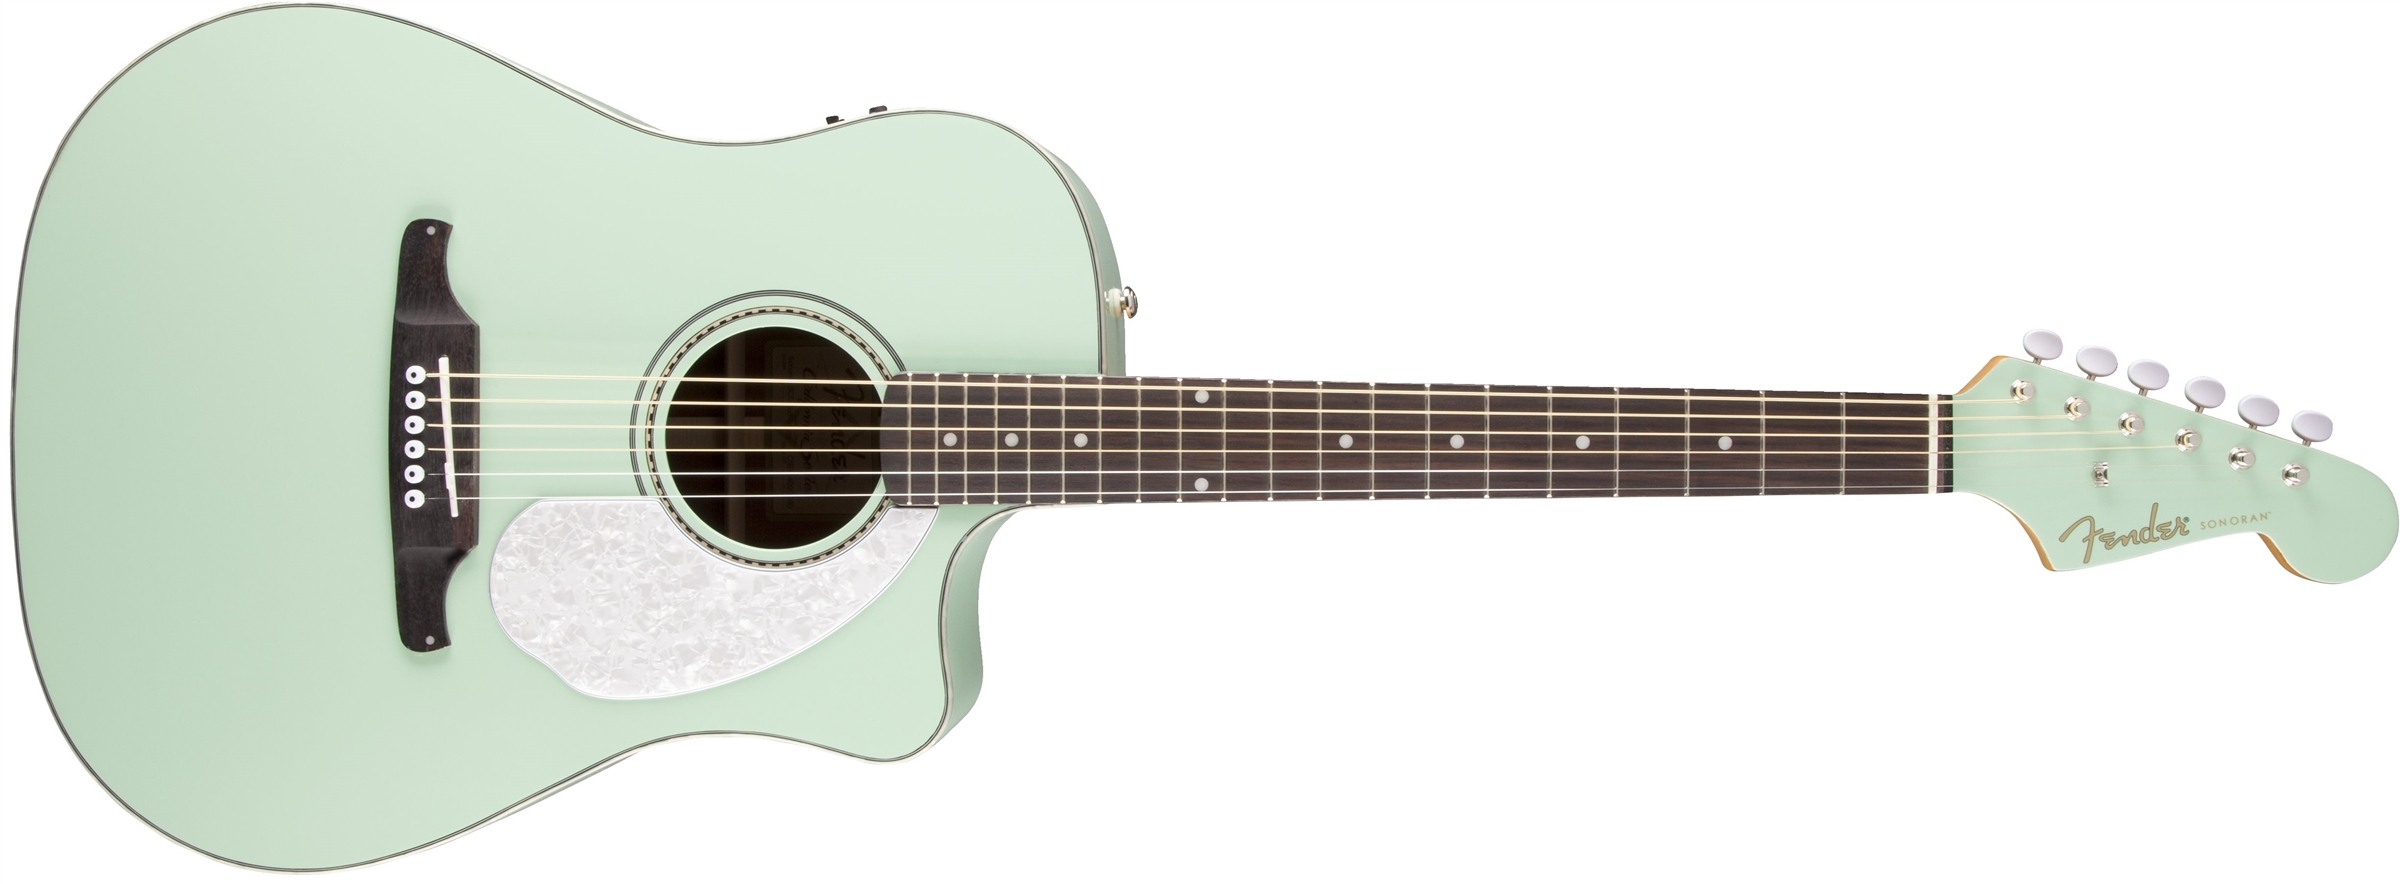 Fender SonoranTM SCE Surf Green With Matching Headstock